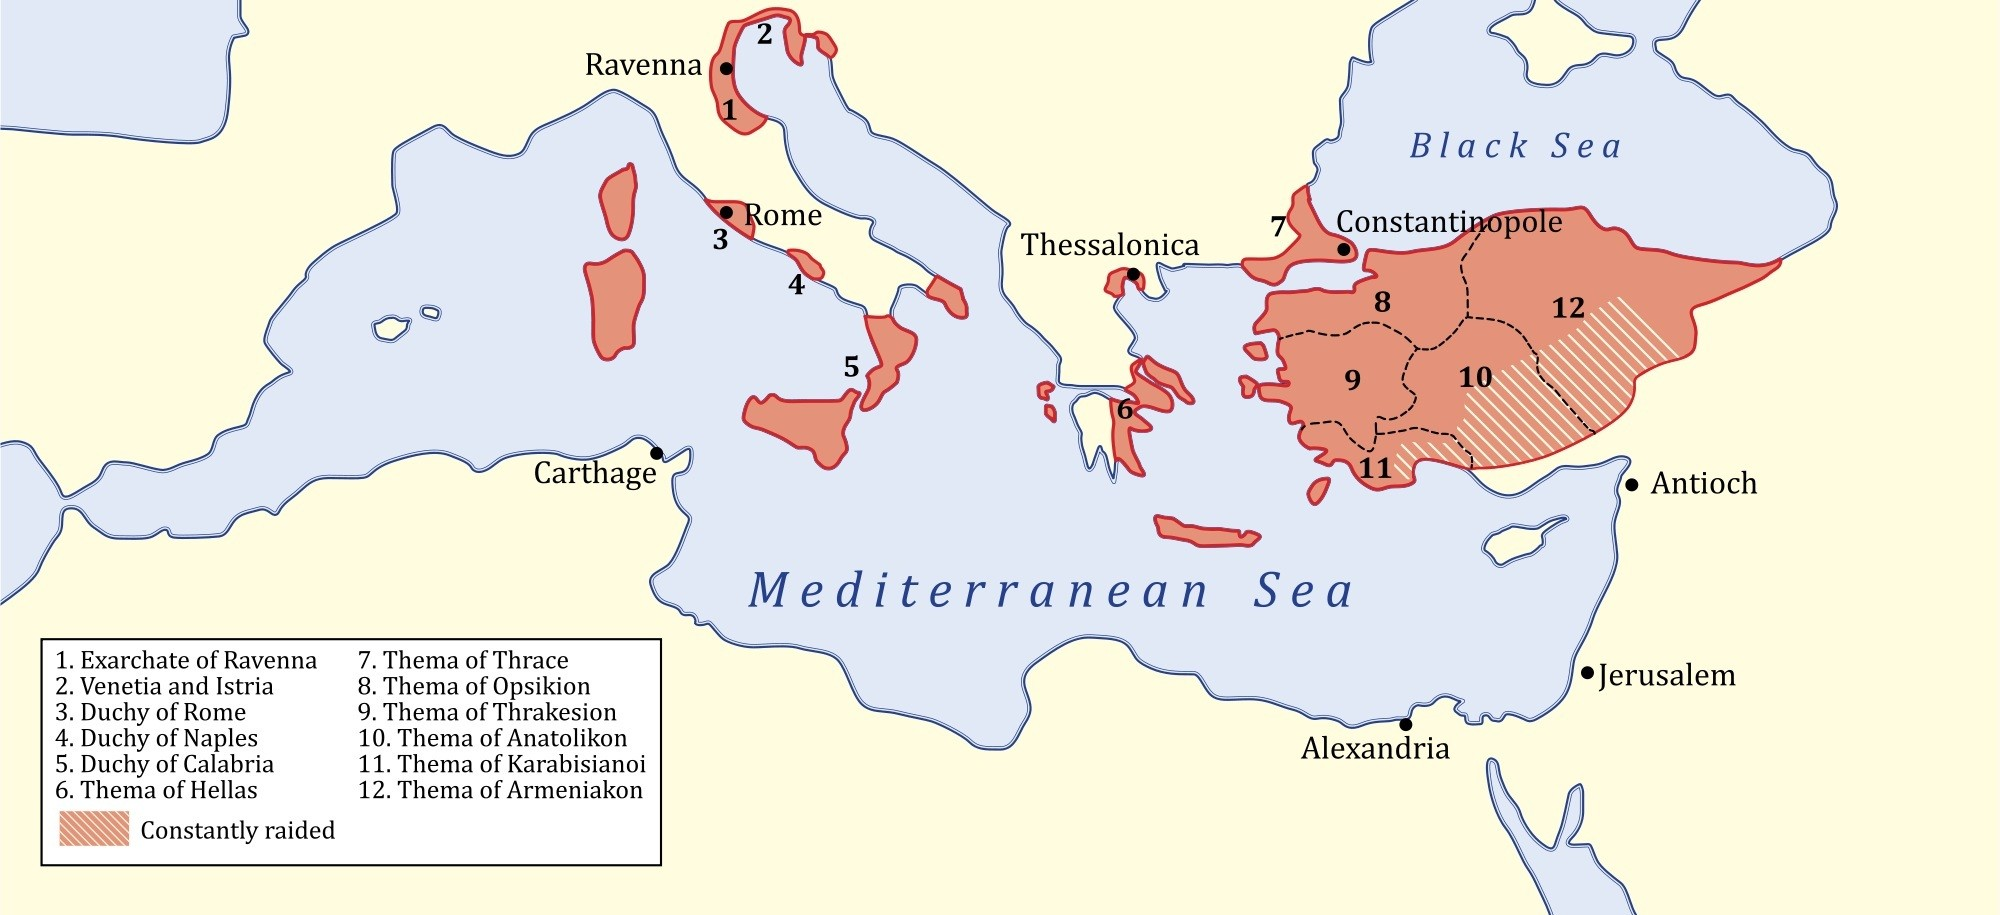 dynasties of the byzantine empire history essay The byzantine empire and islam byzantine empire if history can be said to tell the story of europe's triumph over all of the rest of the world.